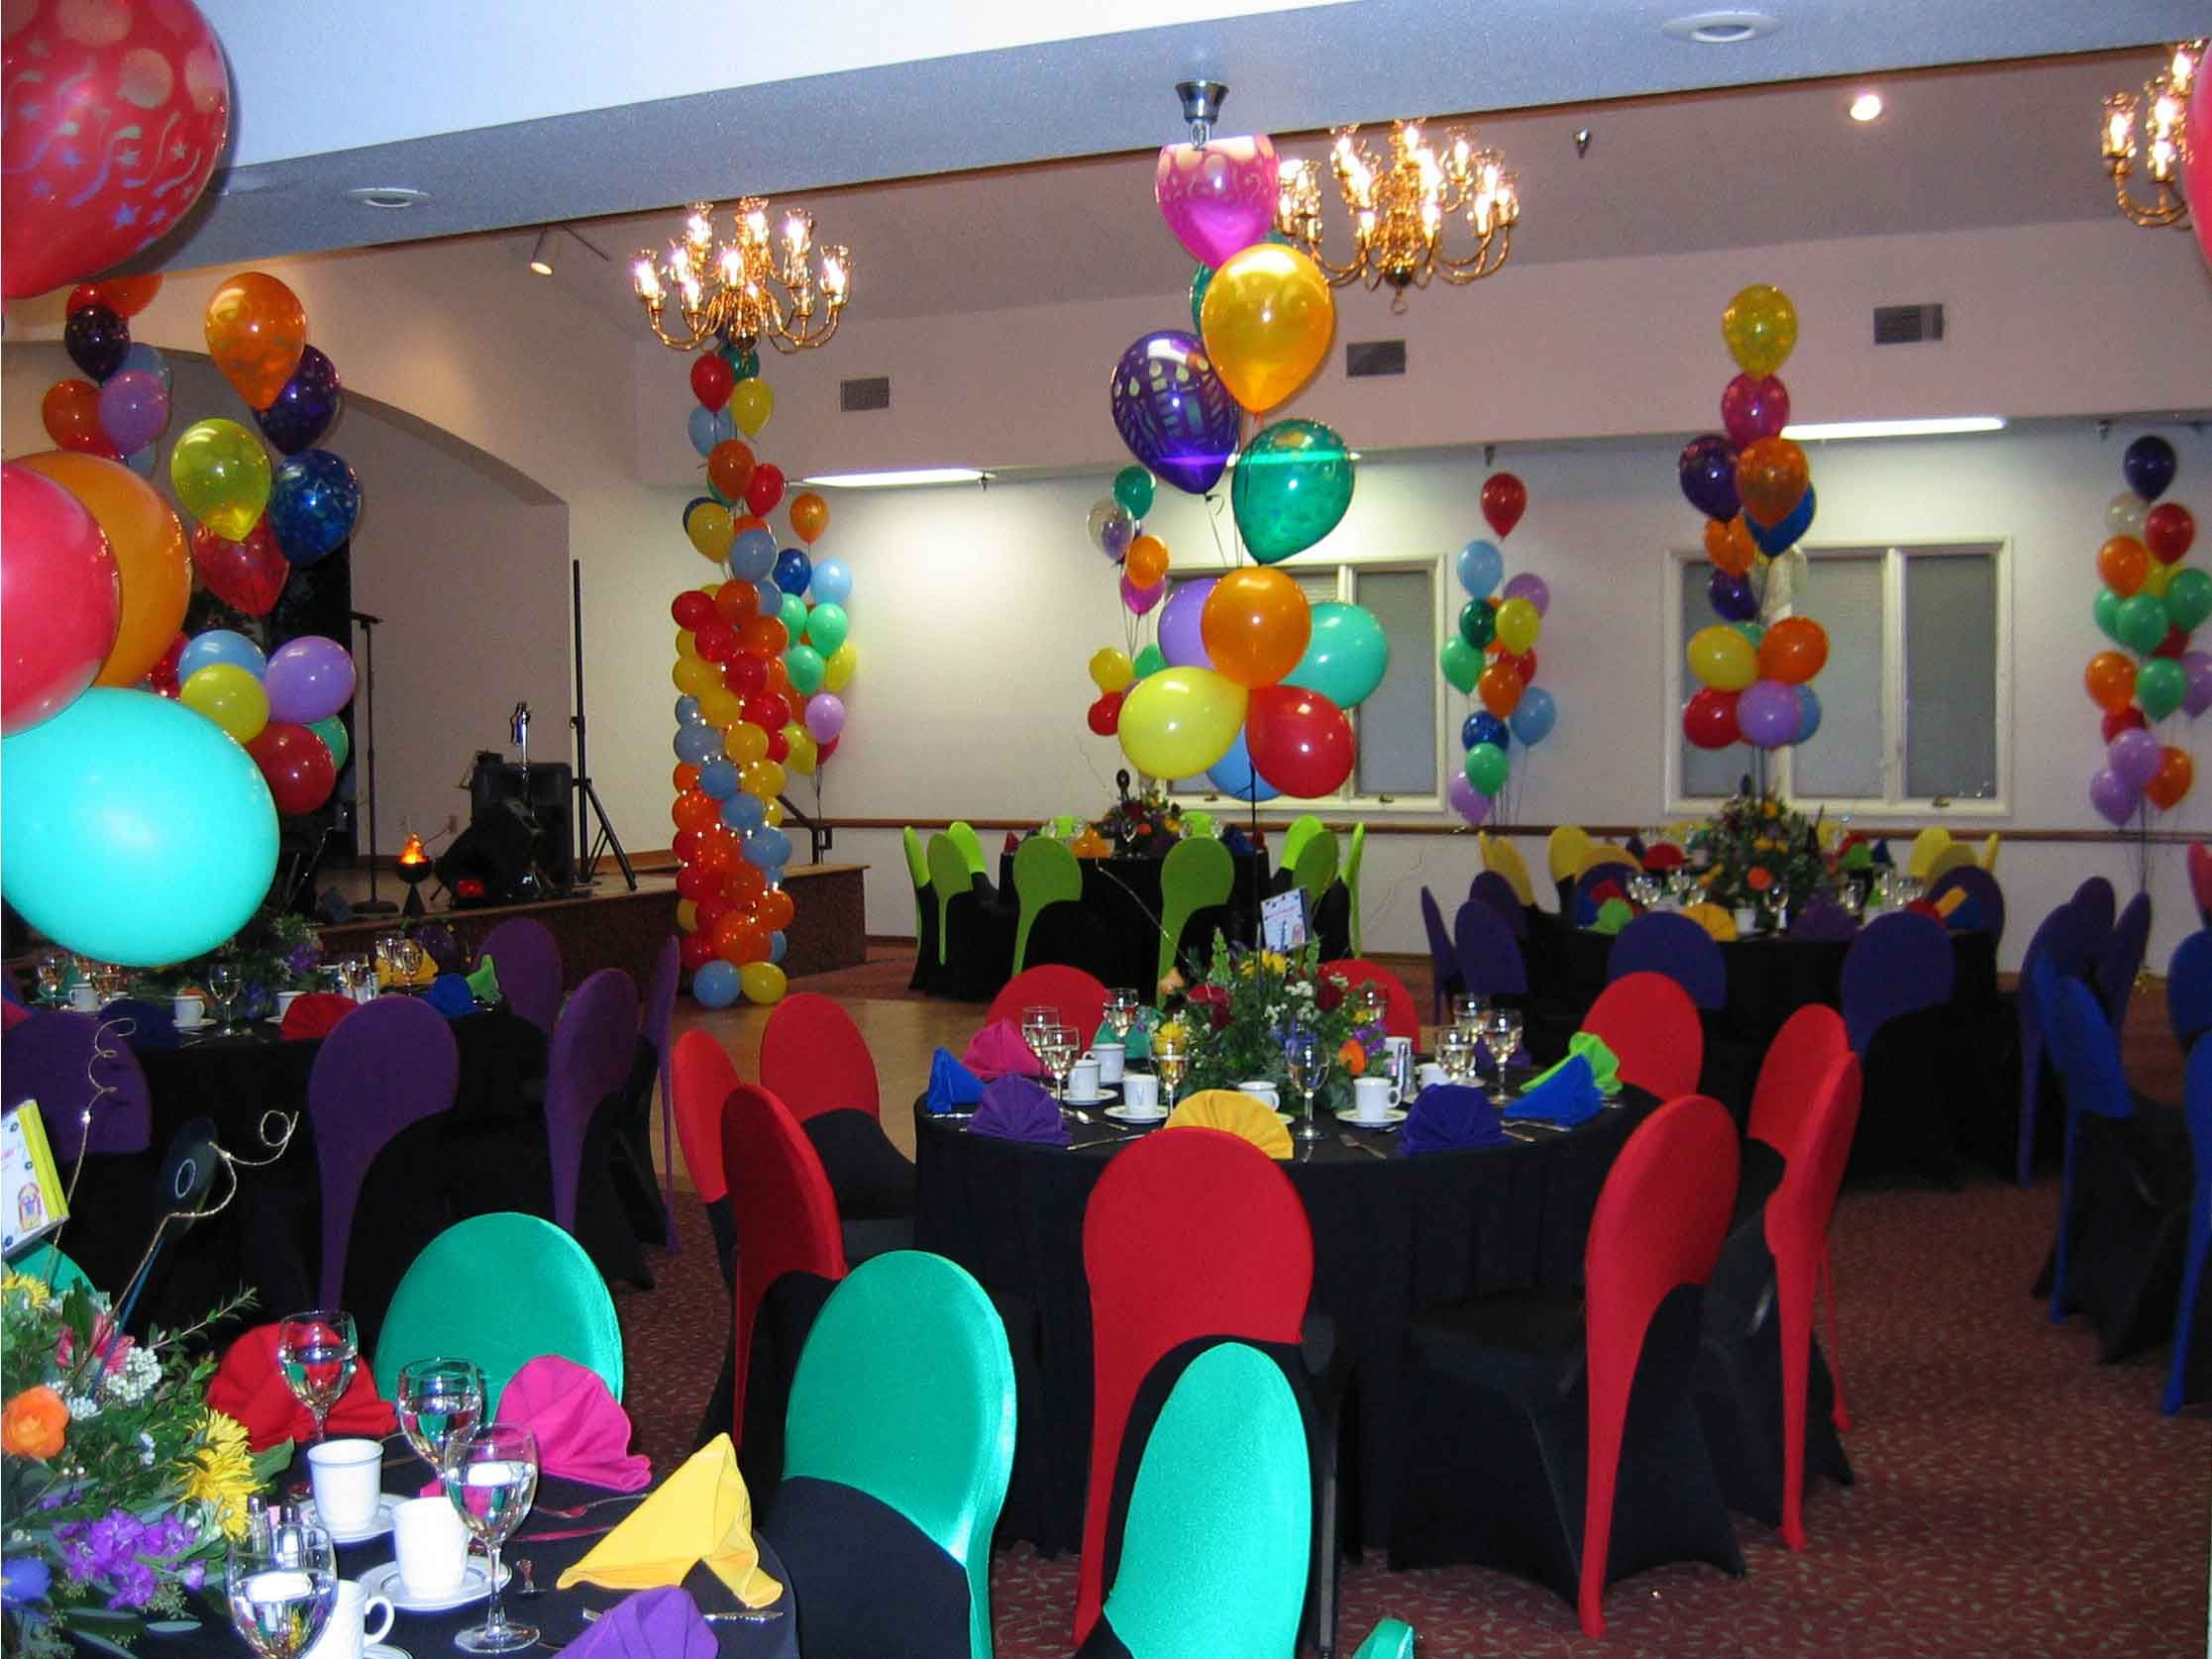 gala decorations Home Personals Gallery Ceremony Gallery 1